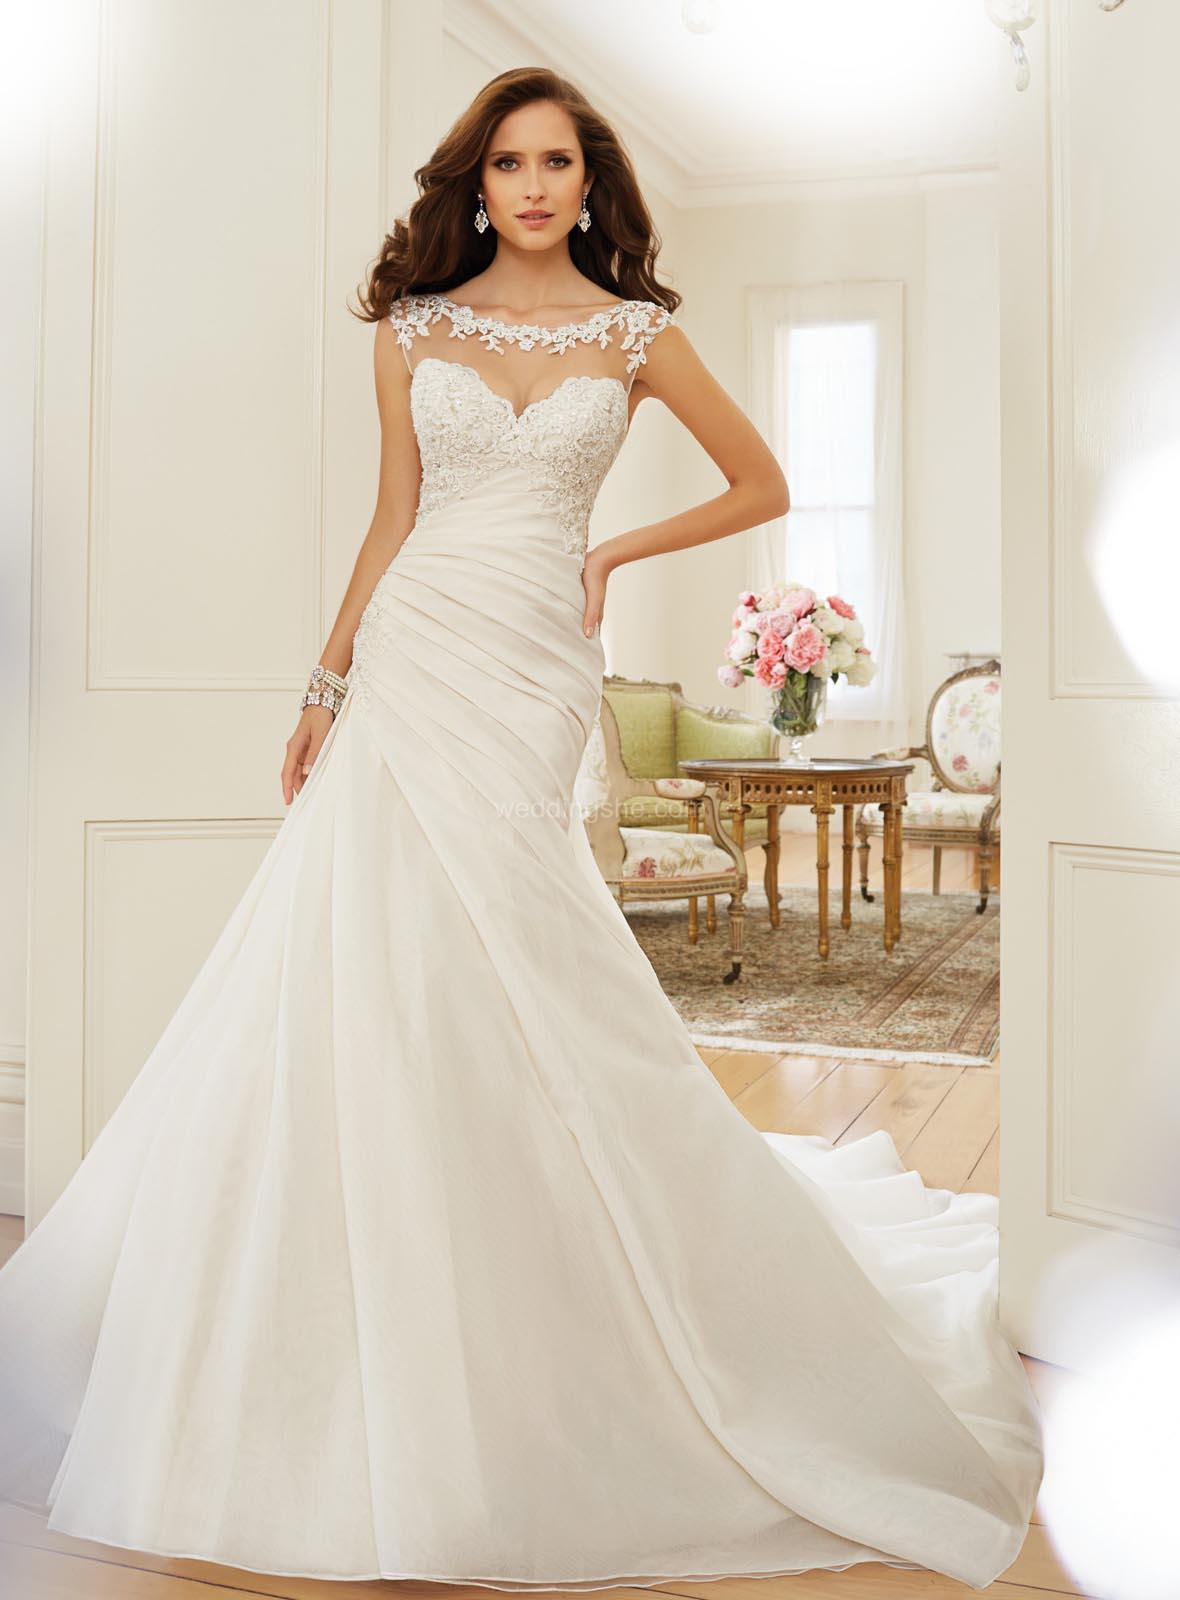 Indian Wedding Gowns Online 48 Superb Wedding Gowns and Bridesmaid